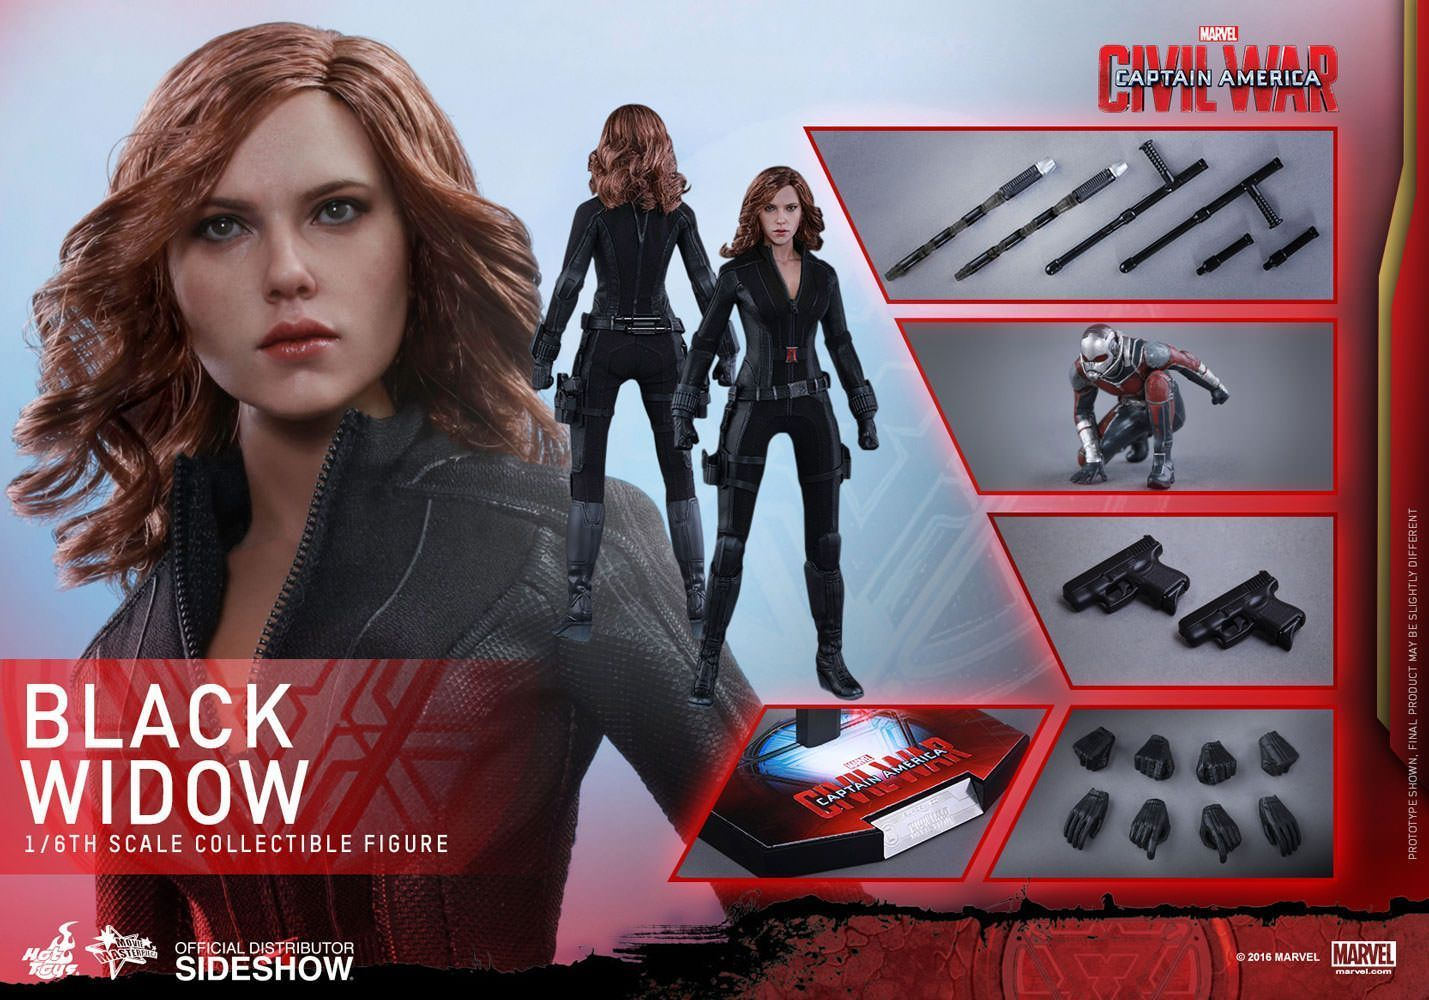 Hot Toys One Sixth Scale Civil War Black Widow Figure